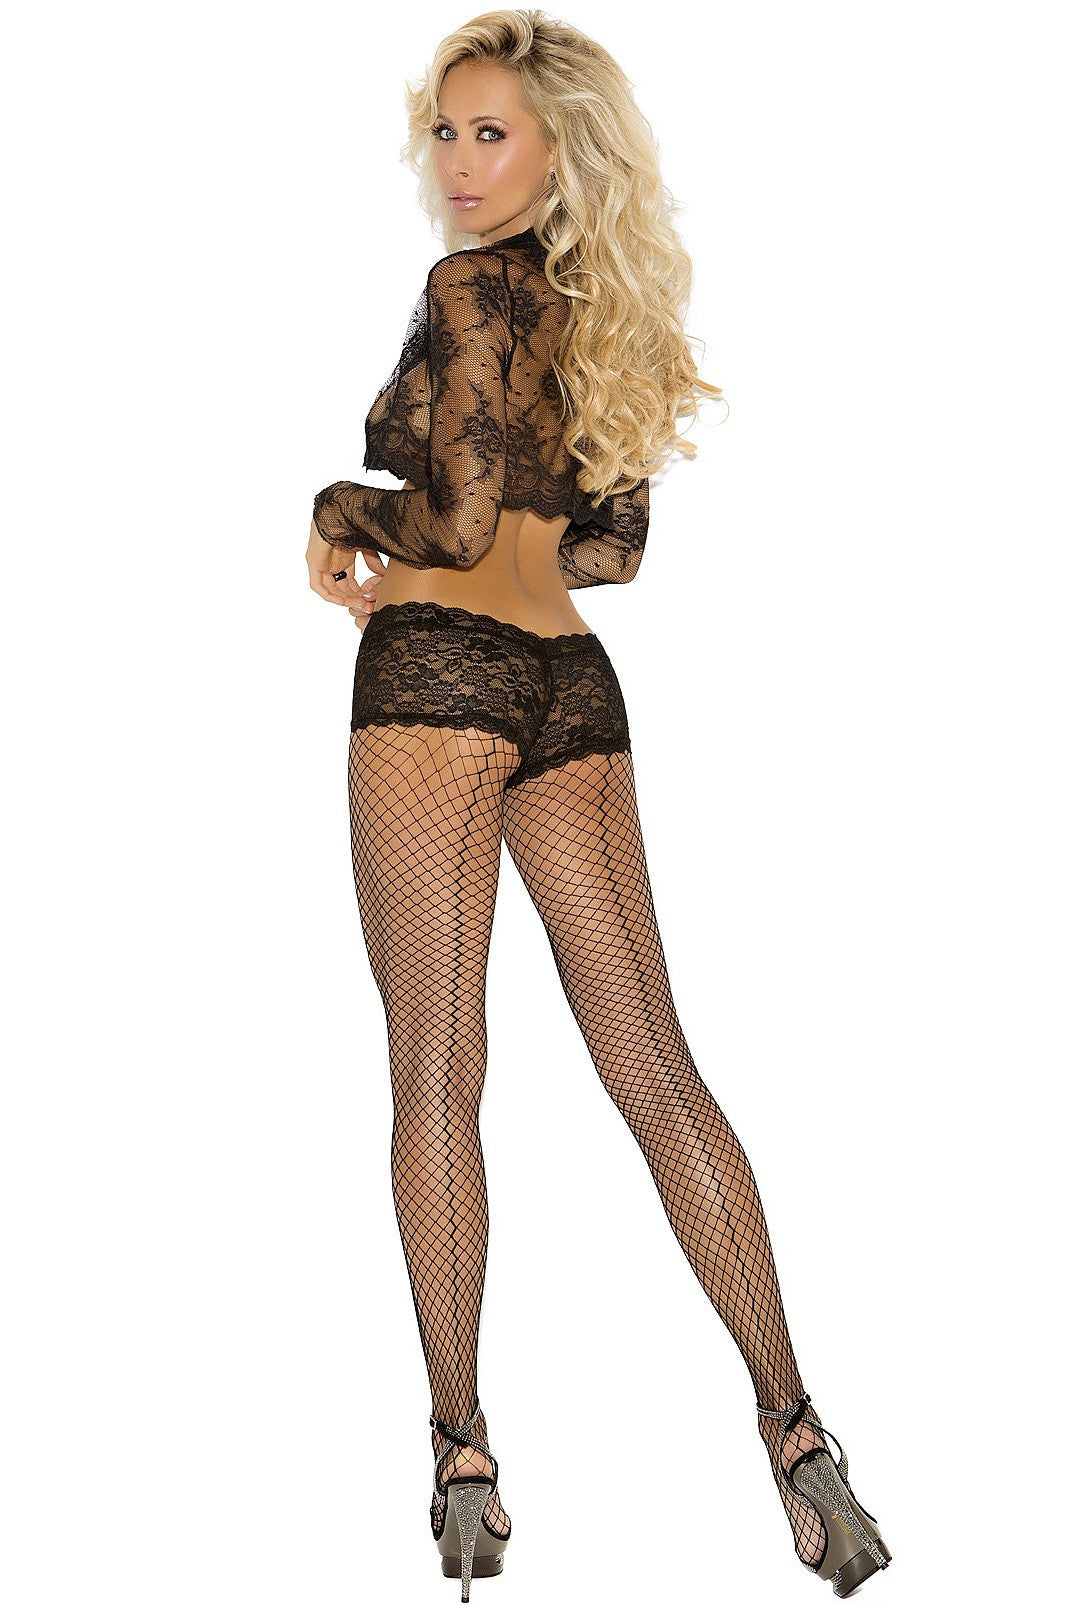 EM-1896 Black fence net pantyhose with attached panty - Sexylingerieland  - 2